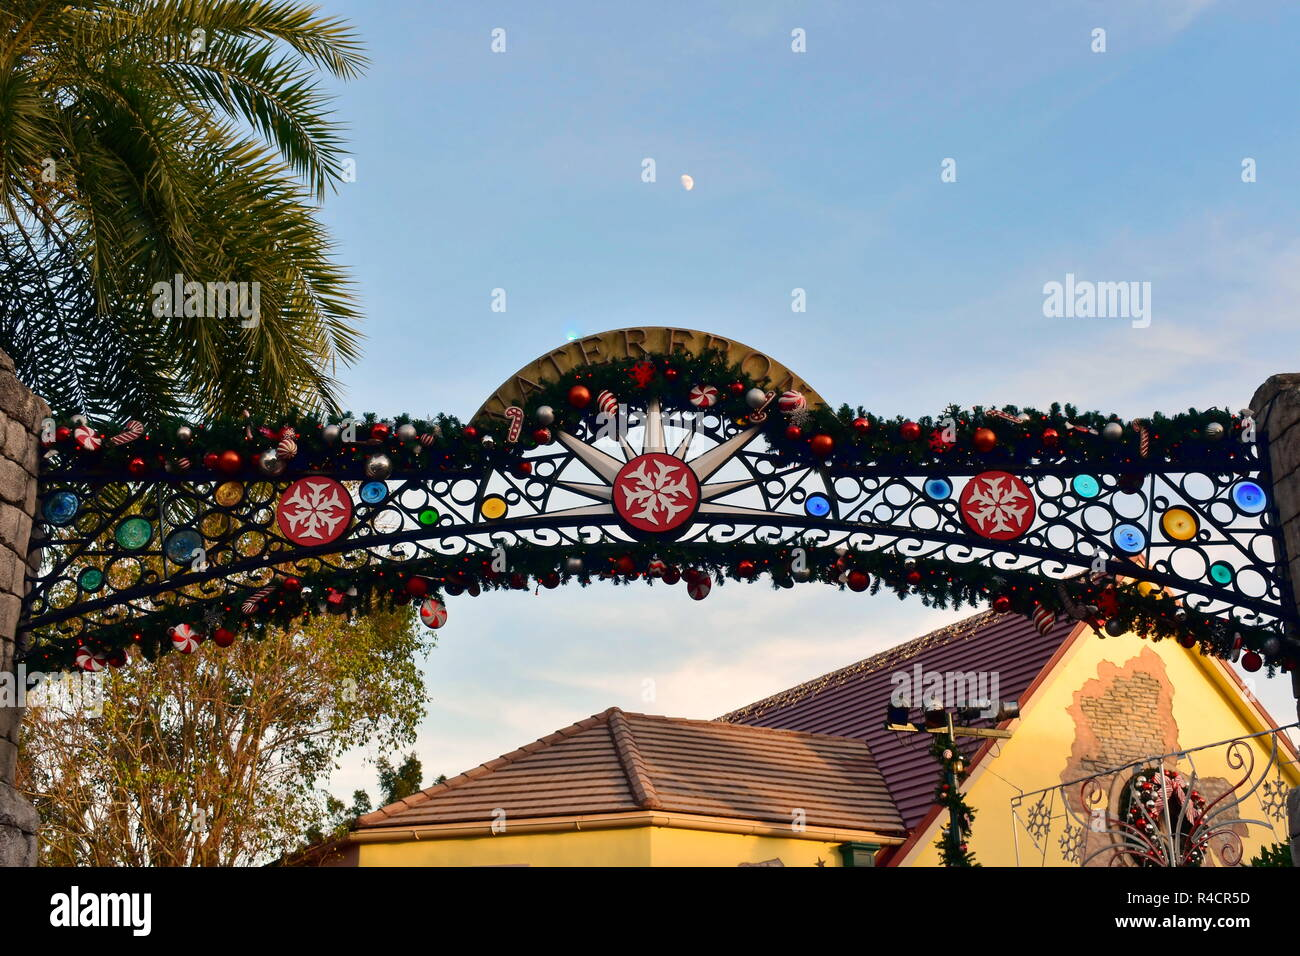 Orlando, Florida. November 19, 2018. Top view of Christmas Market entrance on bluelight cloudy background in International Drive area . Stock Photo